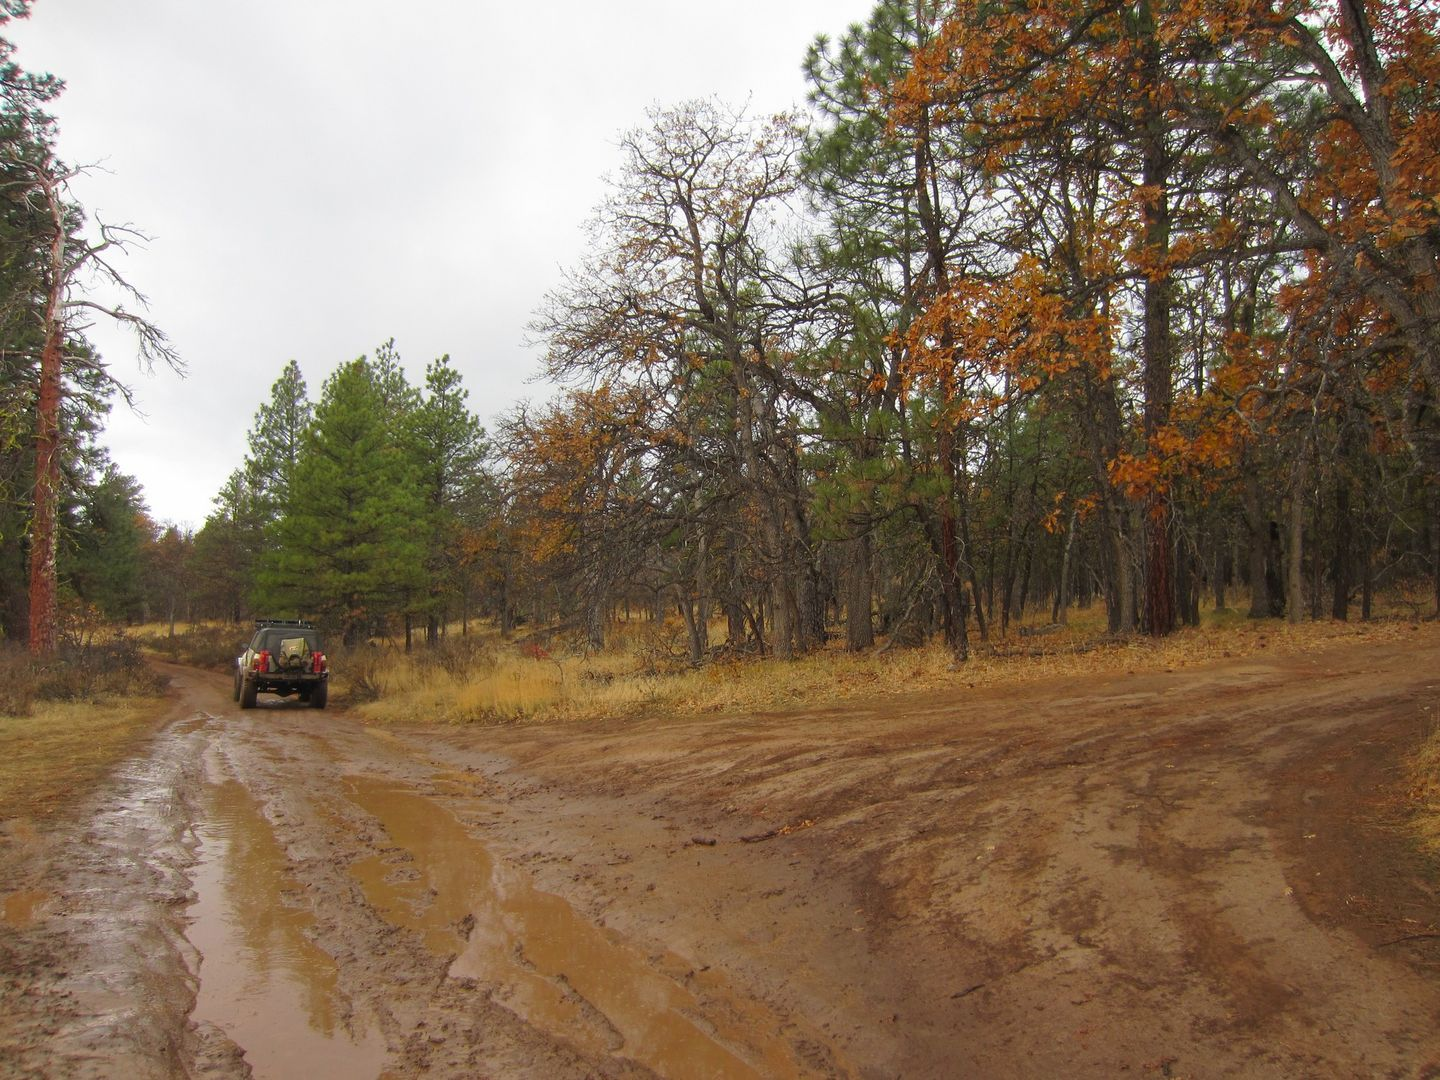 Barlow Trail - Waypoint 4: Continue Straight - End of Old Tractor Road